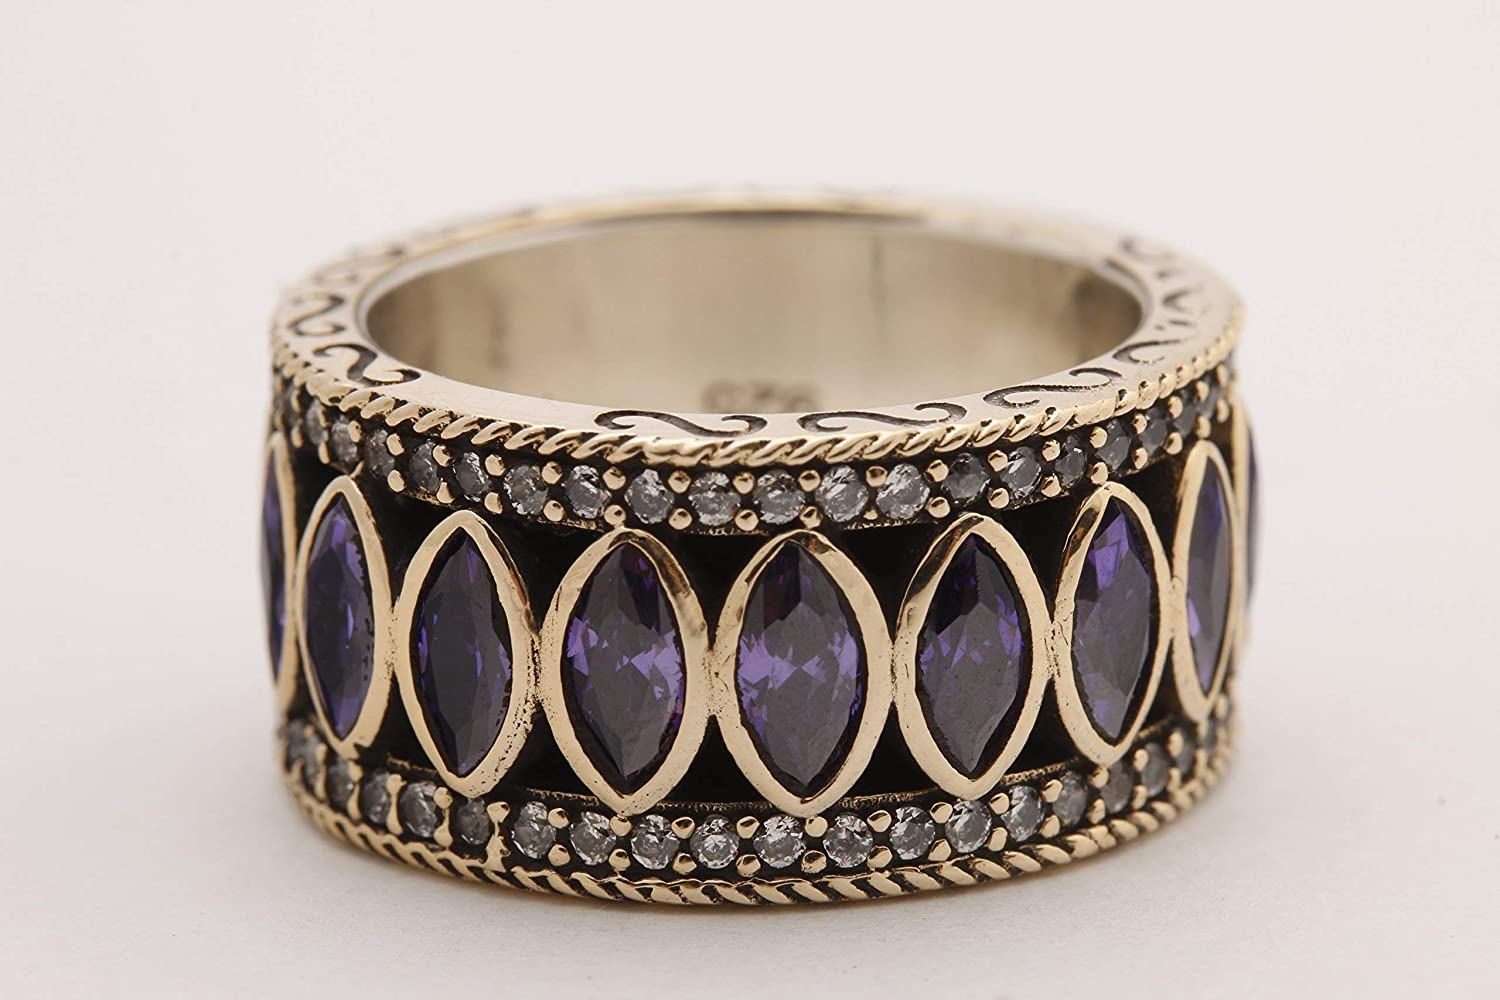 Turkish Handmade Jewelry Marquise Cut Amethyst Round Topaz 925 Sterling Silver Band Ring Size 9.5